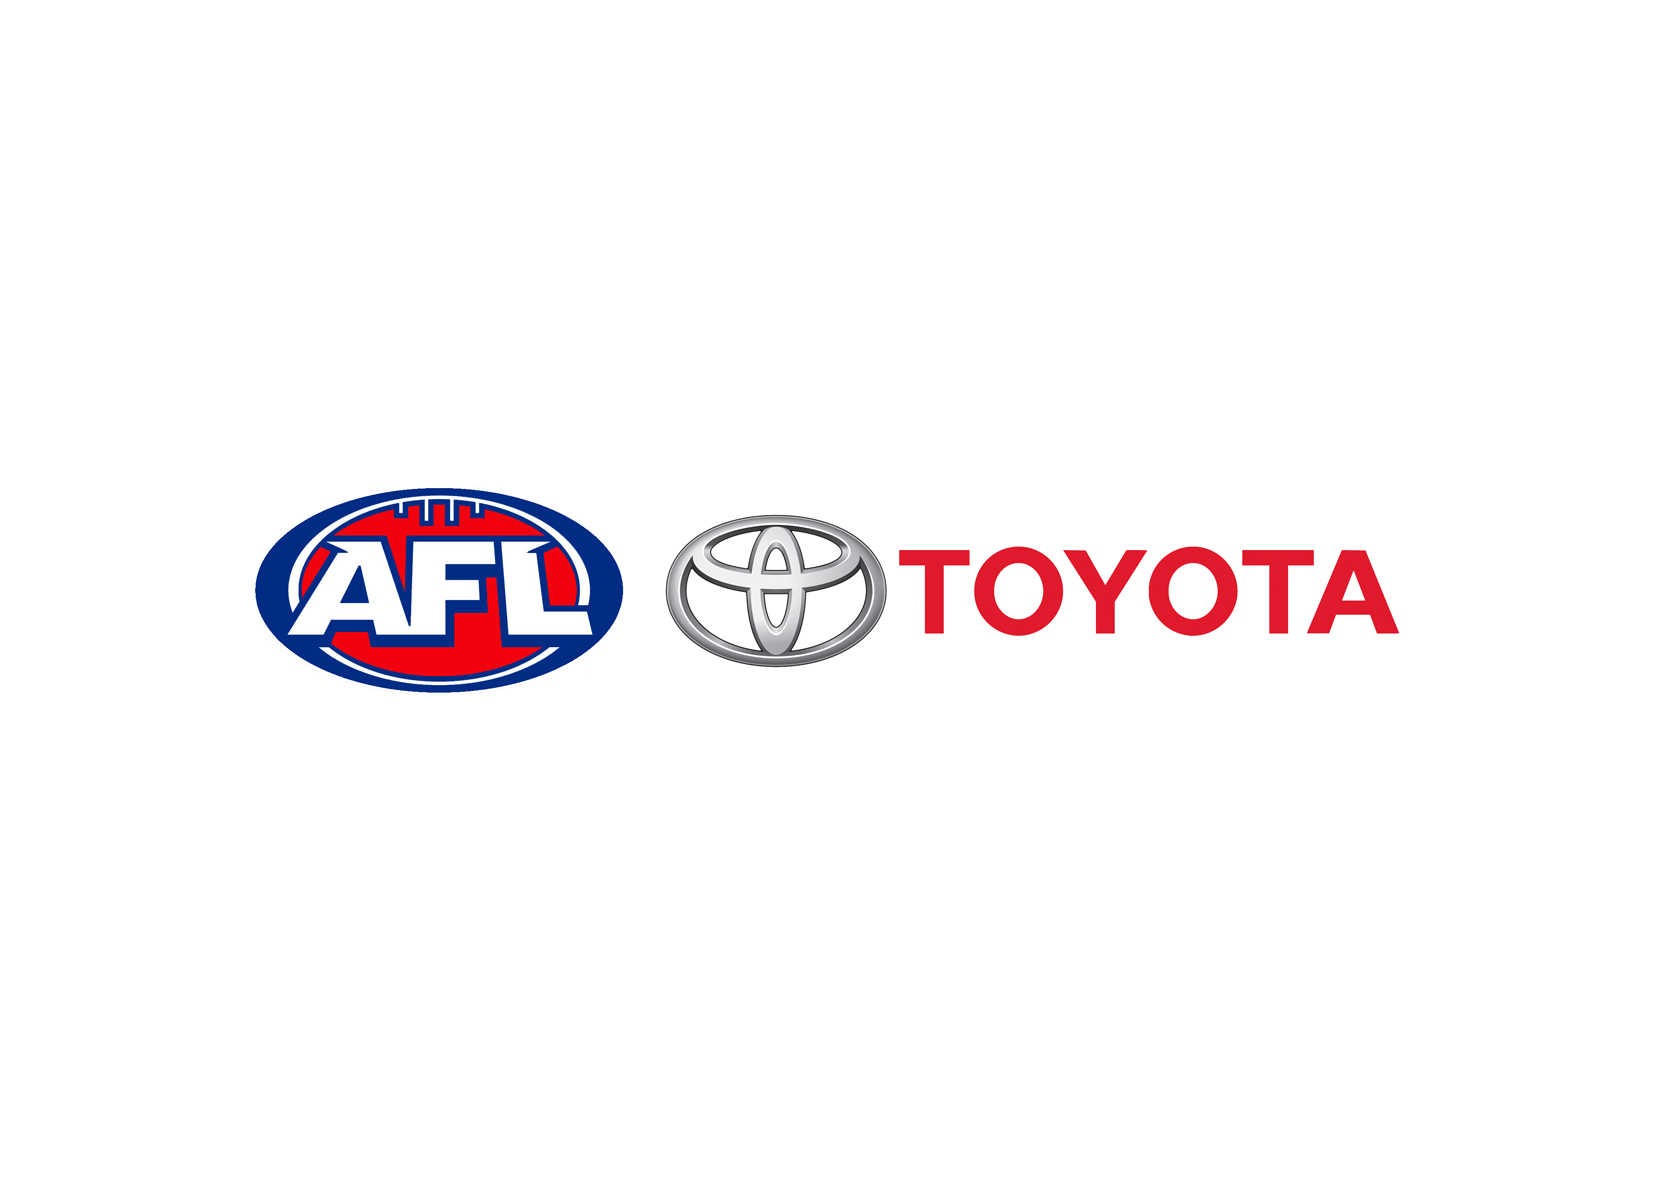 highway brands_0000_afl toyota.jpg